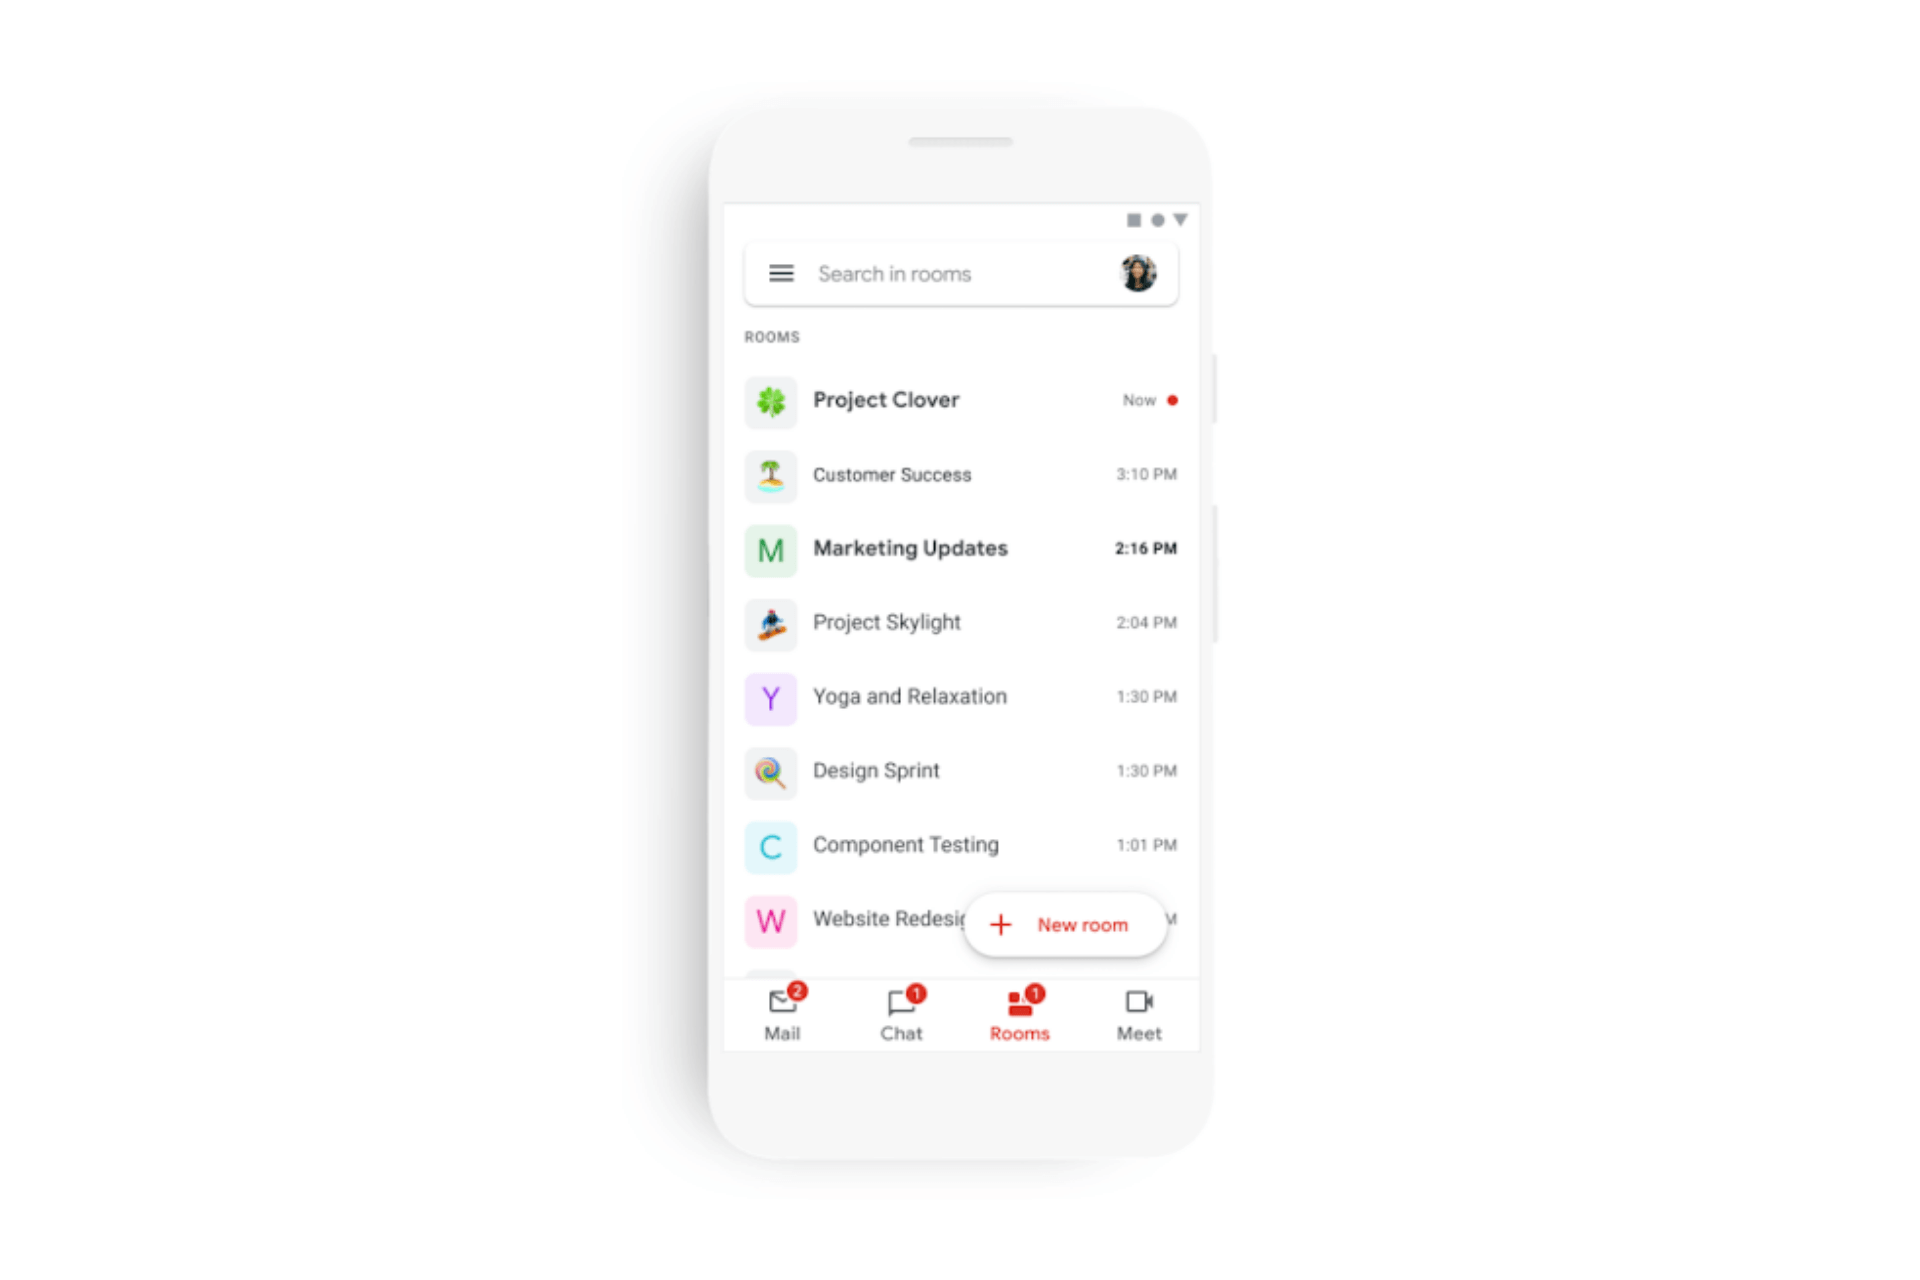 Google Rolling Out Workspace to Gmail on Android and Web